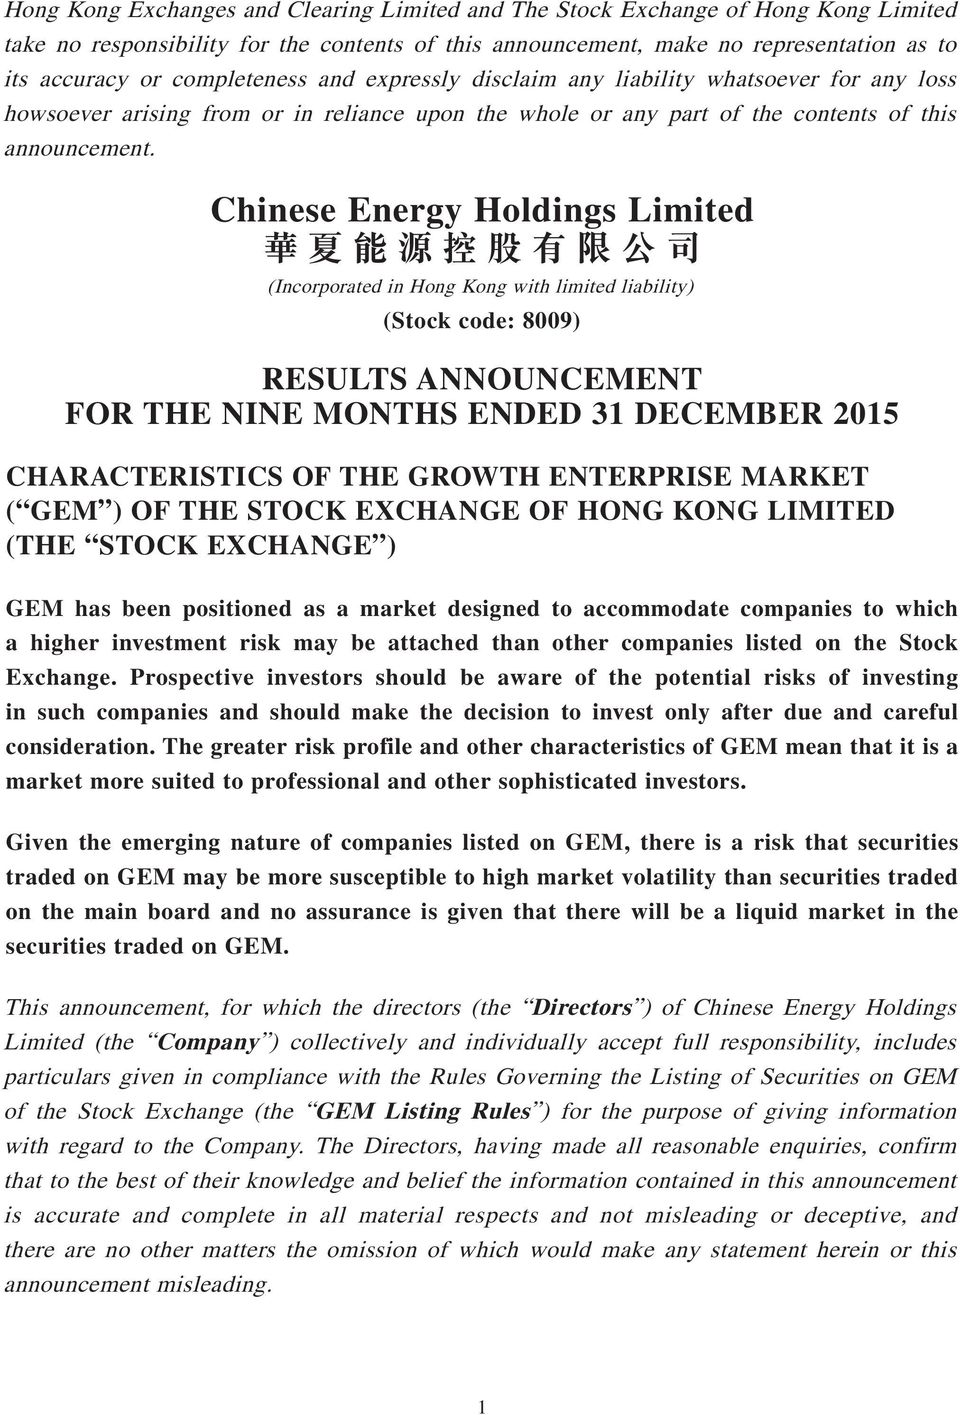 Chinese Energy Holdings Limited (Incorporated in Hong Kong with limited liability) (Stock code: 8009) RESULTS ANNOUNCEMENT FOR THE NINE MONTHS ENDED 31 DECEMBER 2015 CHARACTERISTICS OF THE GROWTH